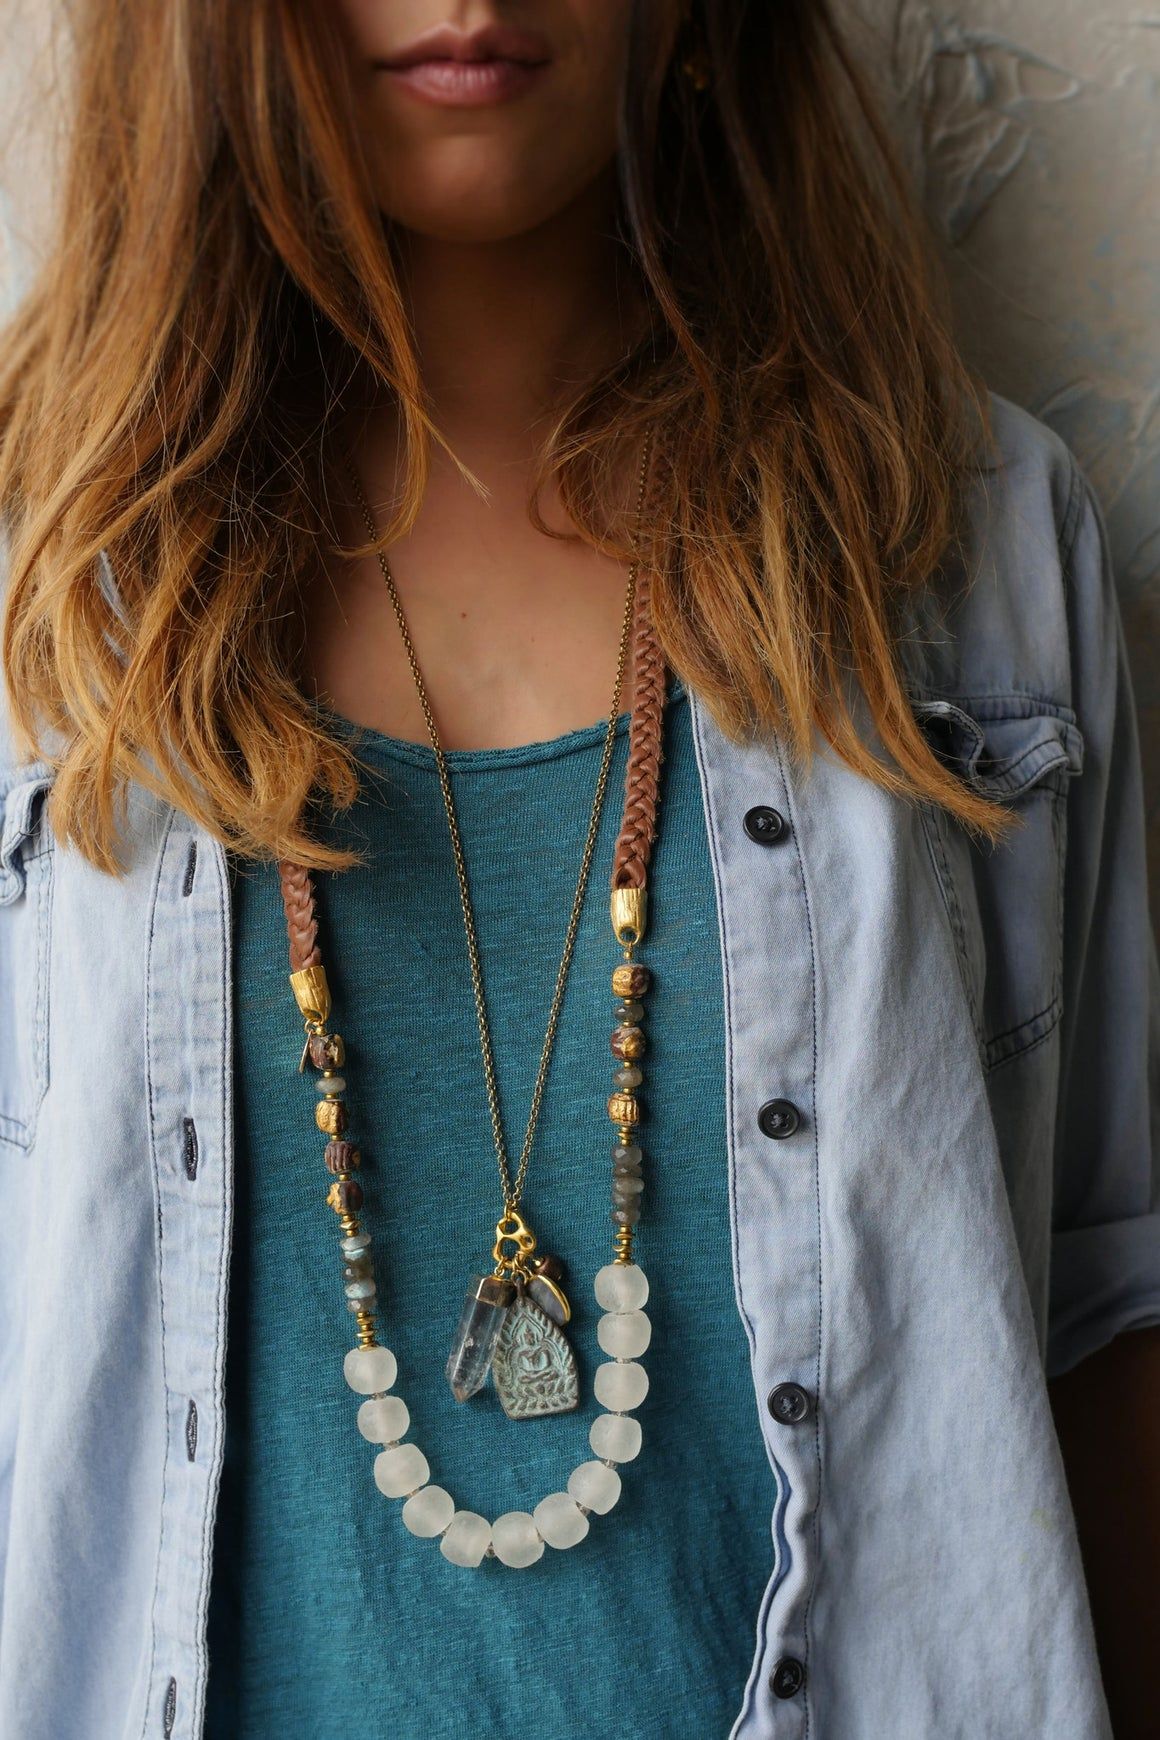 Balanced Charm Necklace